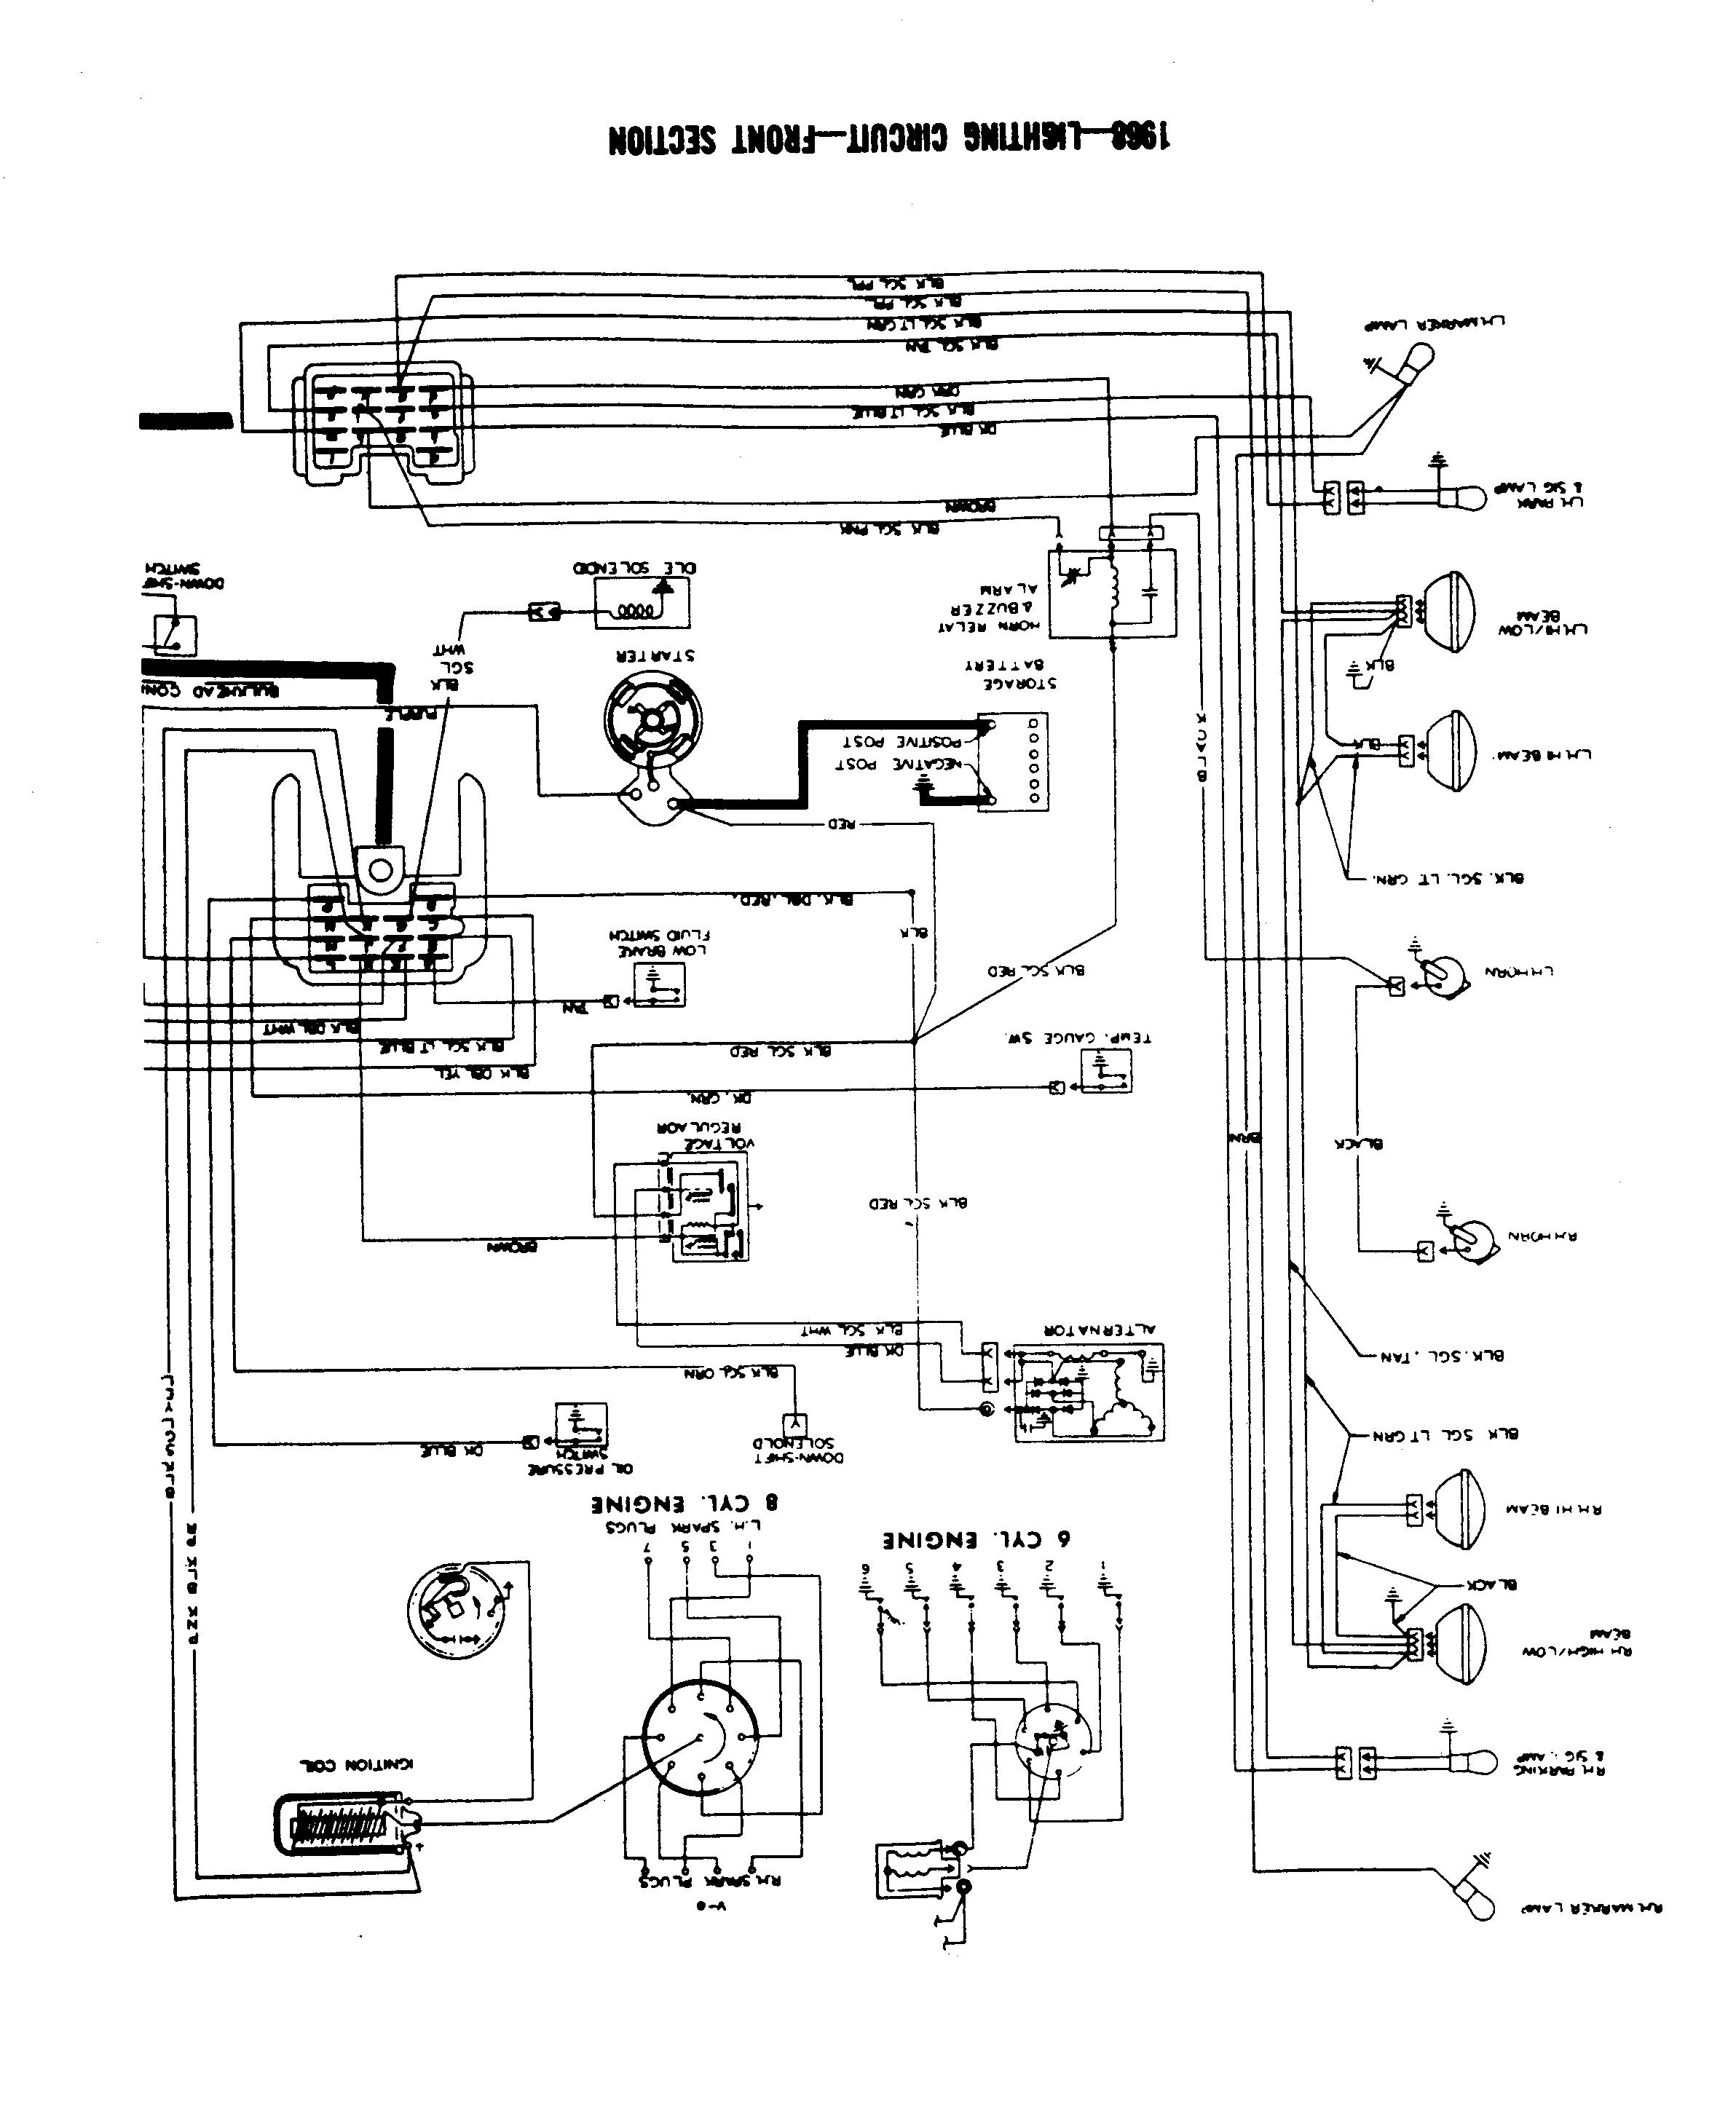 1966 Pontiac Le Mans Wiring Schematic - engineer wiring diagram johnson outboard starter solenoid wiring diagram 108.writer.d-sdn.de